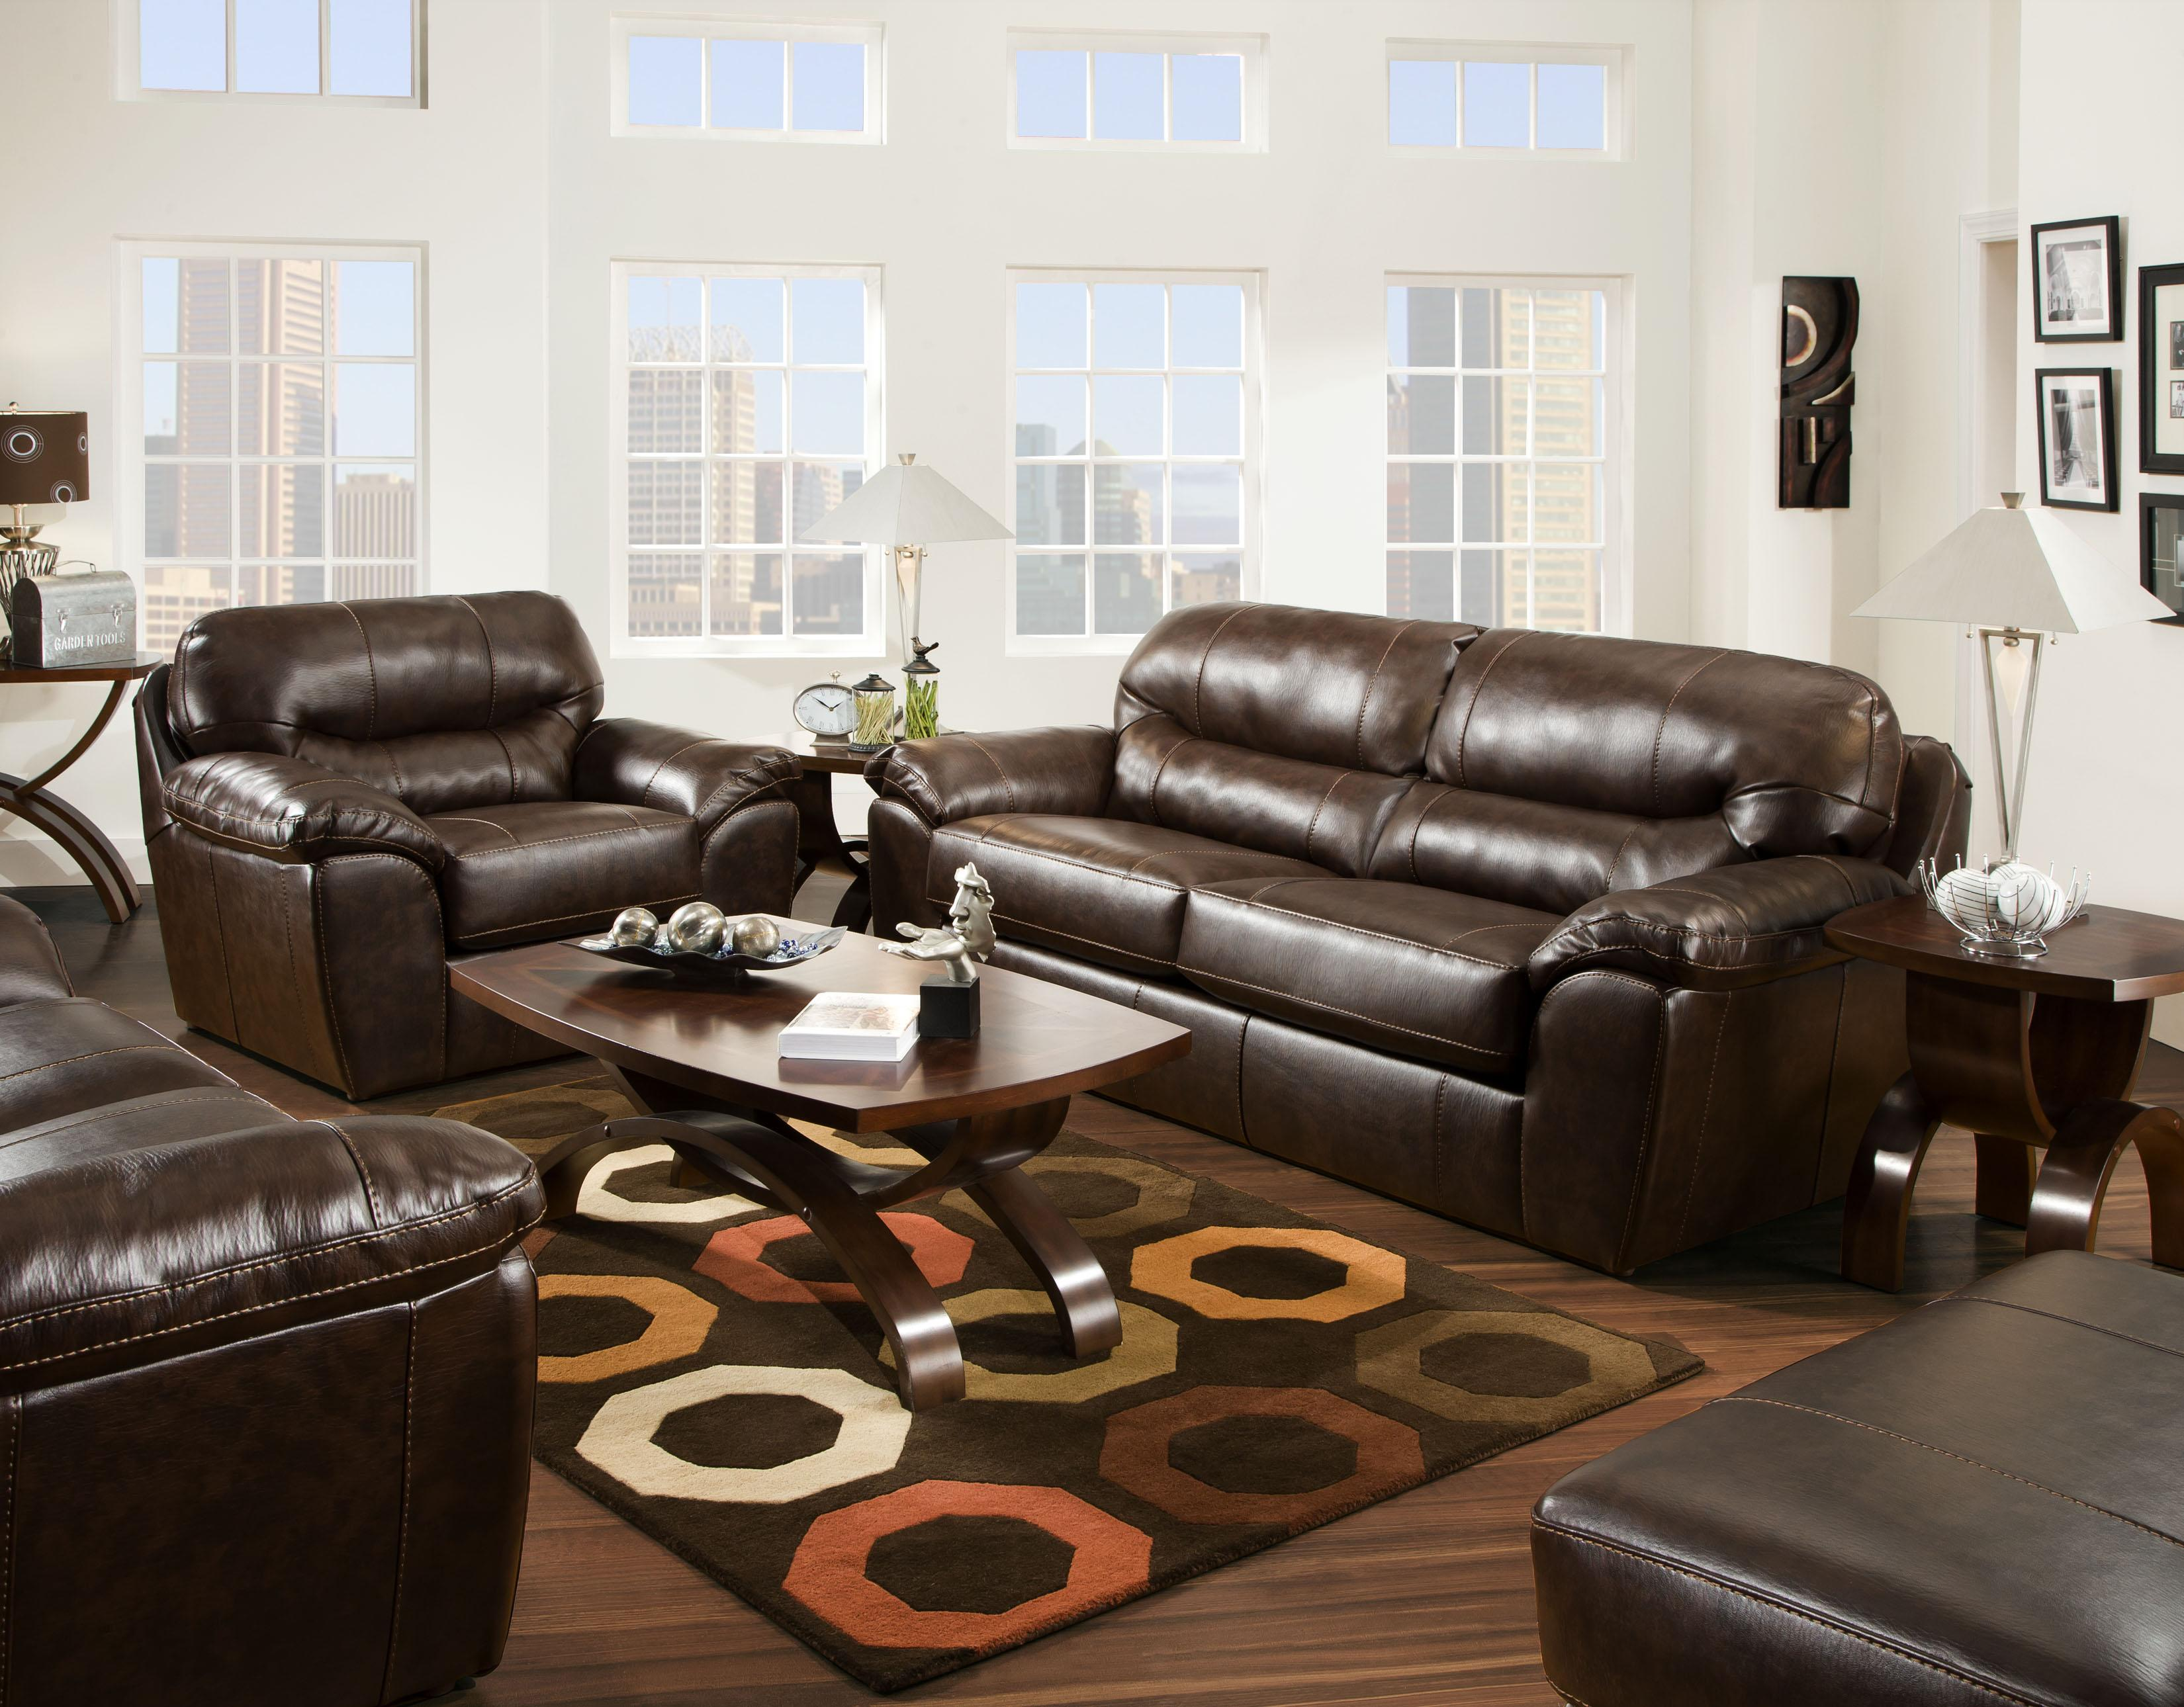 Merveilleux Jackson Furniture Brantley Casual And Comfortable Family Room Sofa Sleeper  | Wayside Furniture | Sleeper Sofas